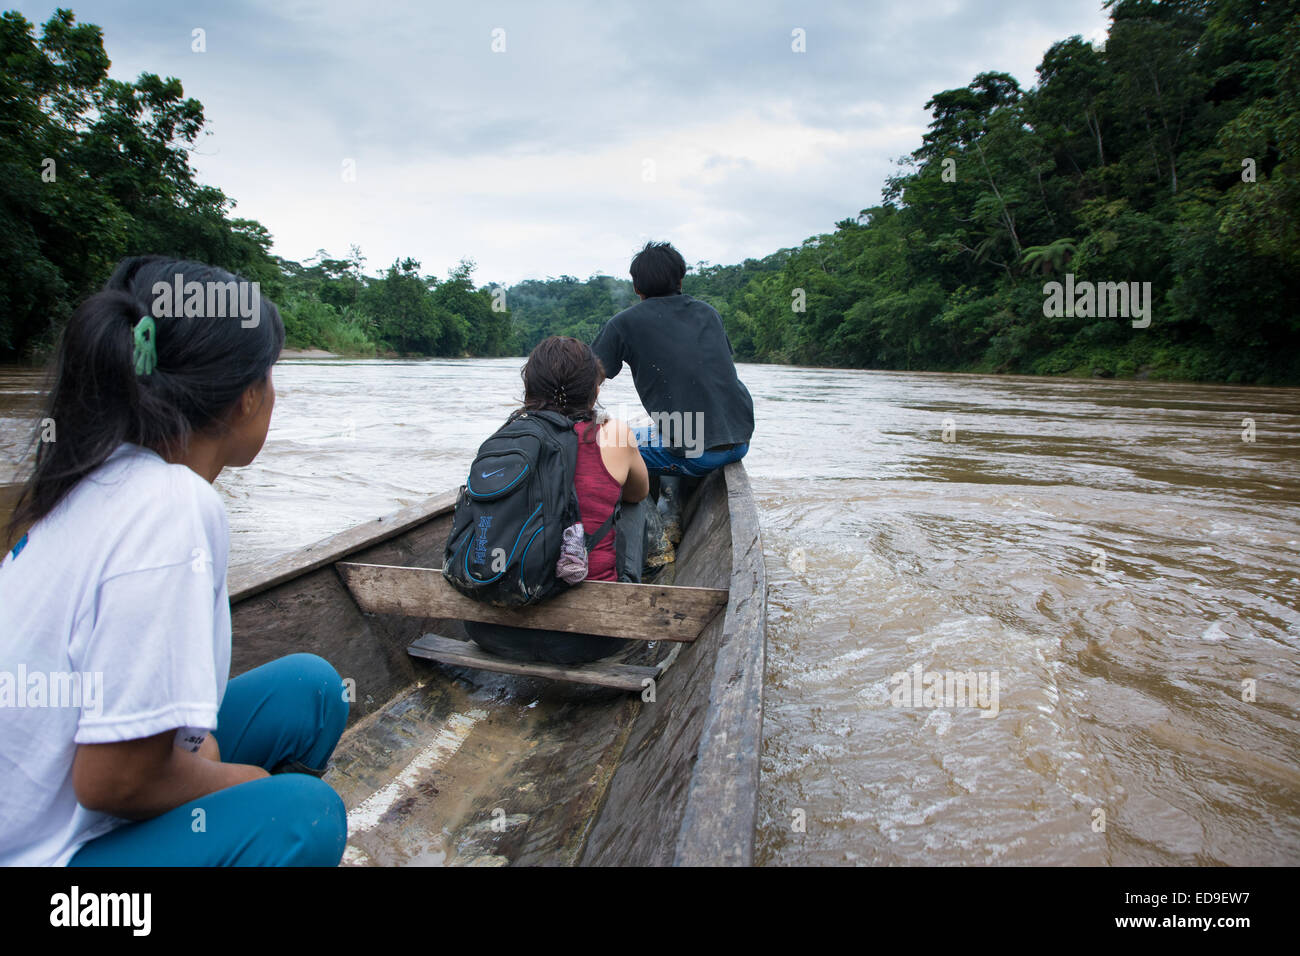 People traveling by dugout canoe along Rio Cenepa in the Amazon jungle region of Northern Peru - Stock Image